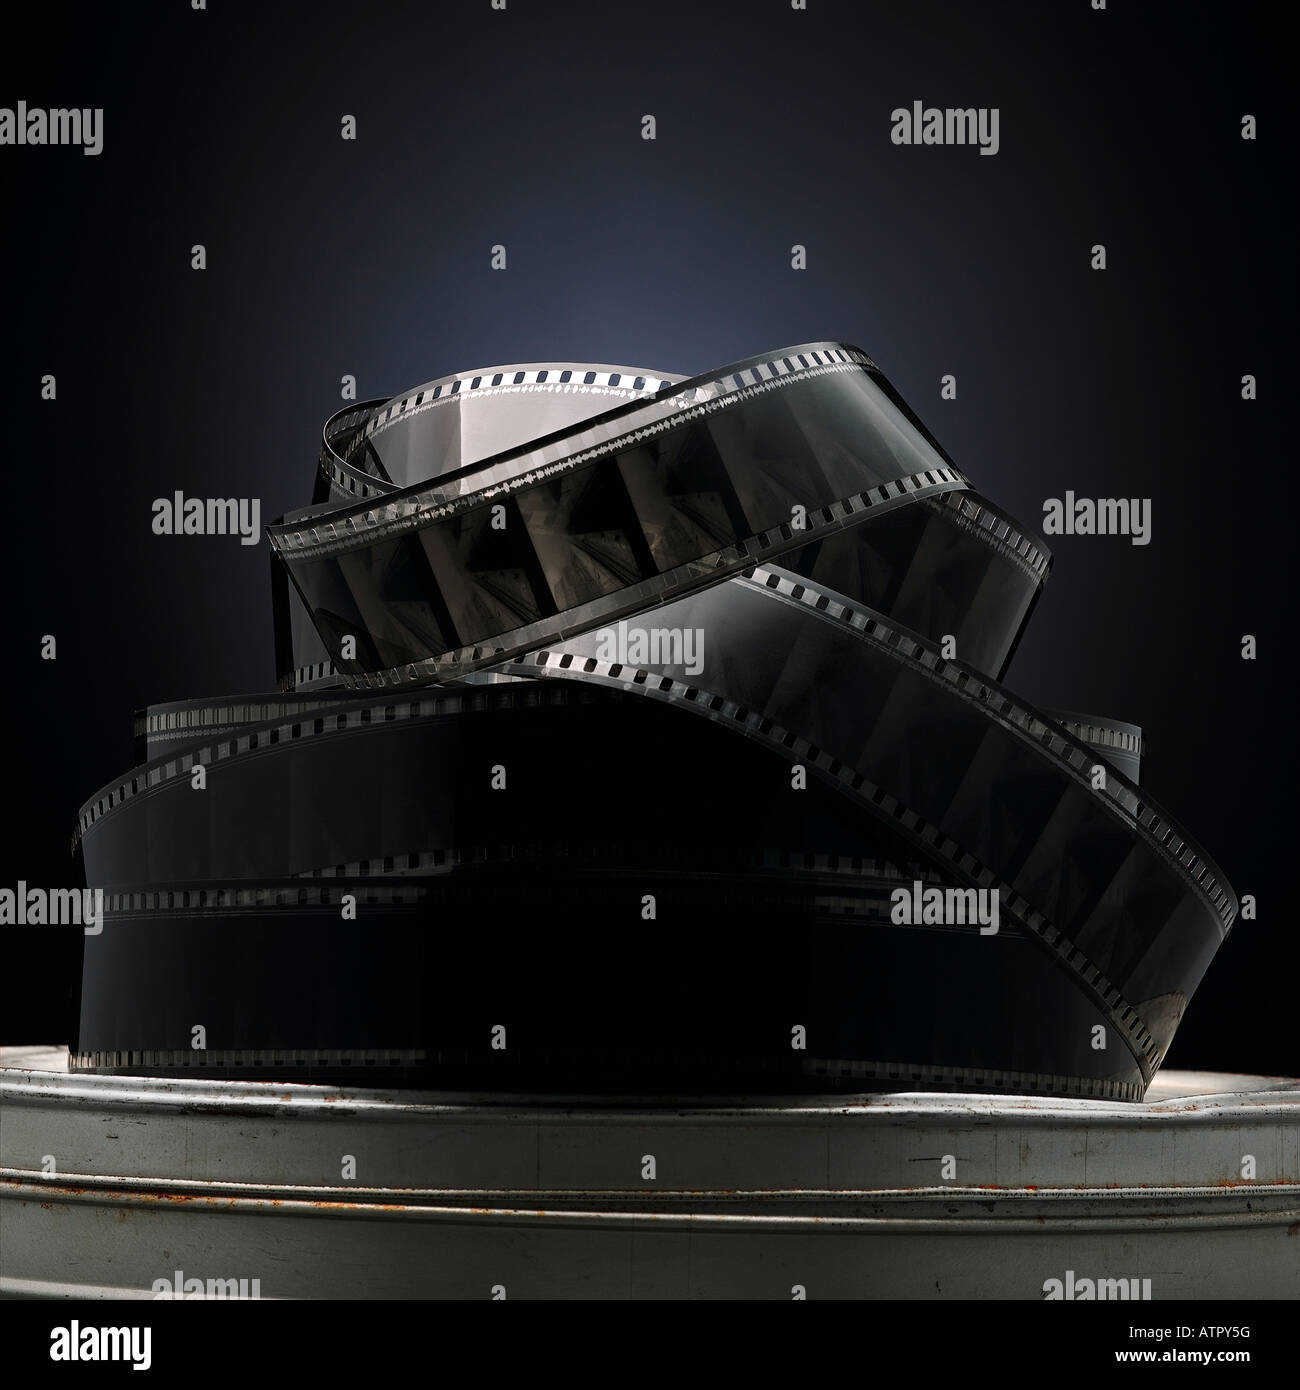 jumbled reel of film on a canister - Stock Image